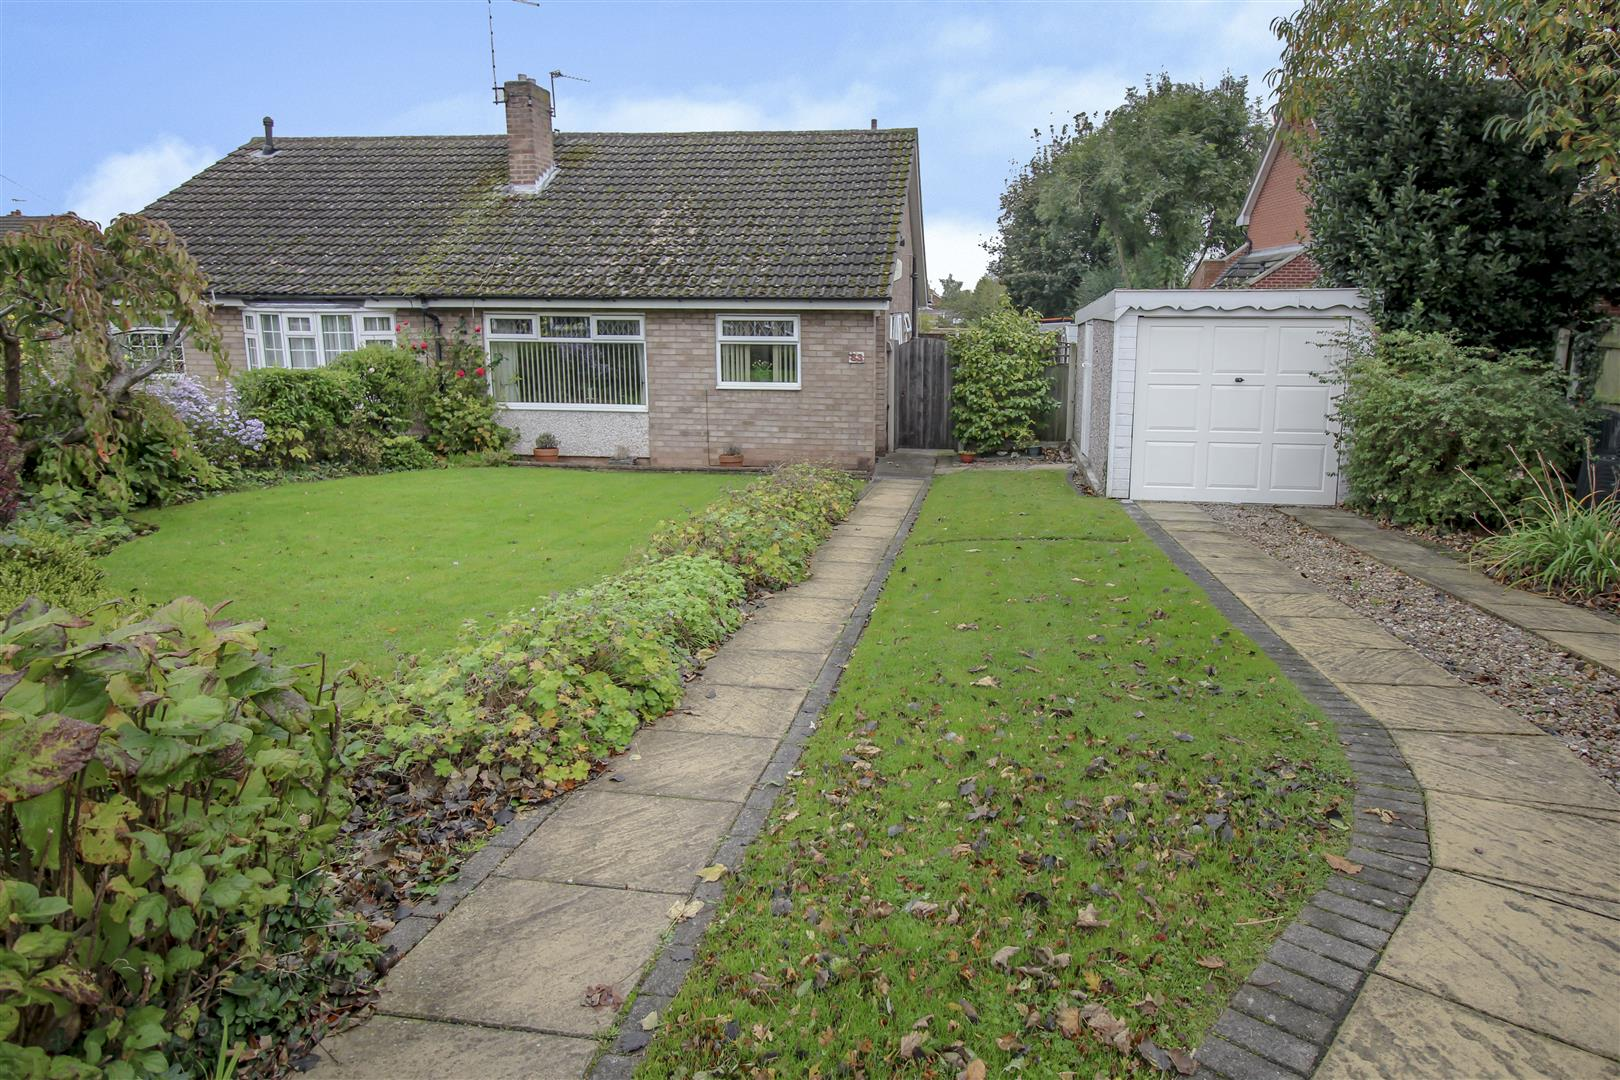 2 Bedrooms Bungalow for sale in Blake Road, Stapleford